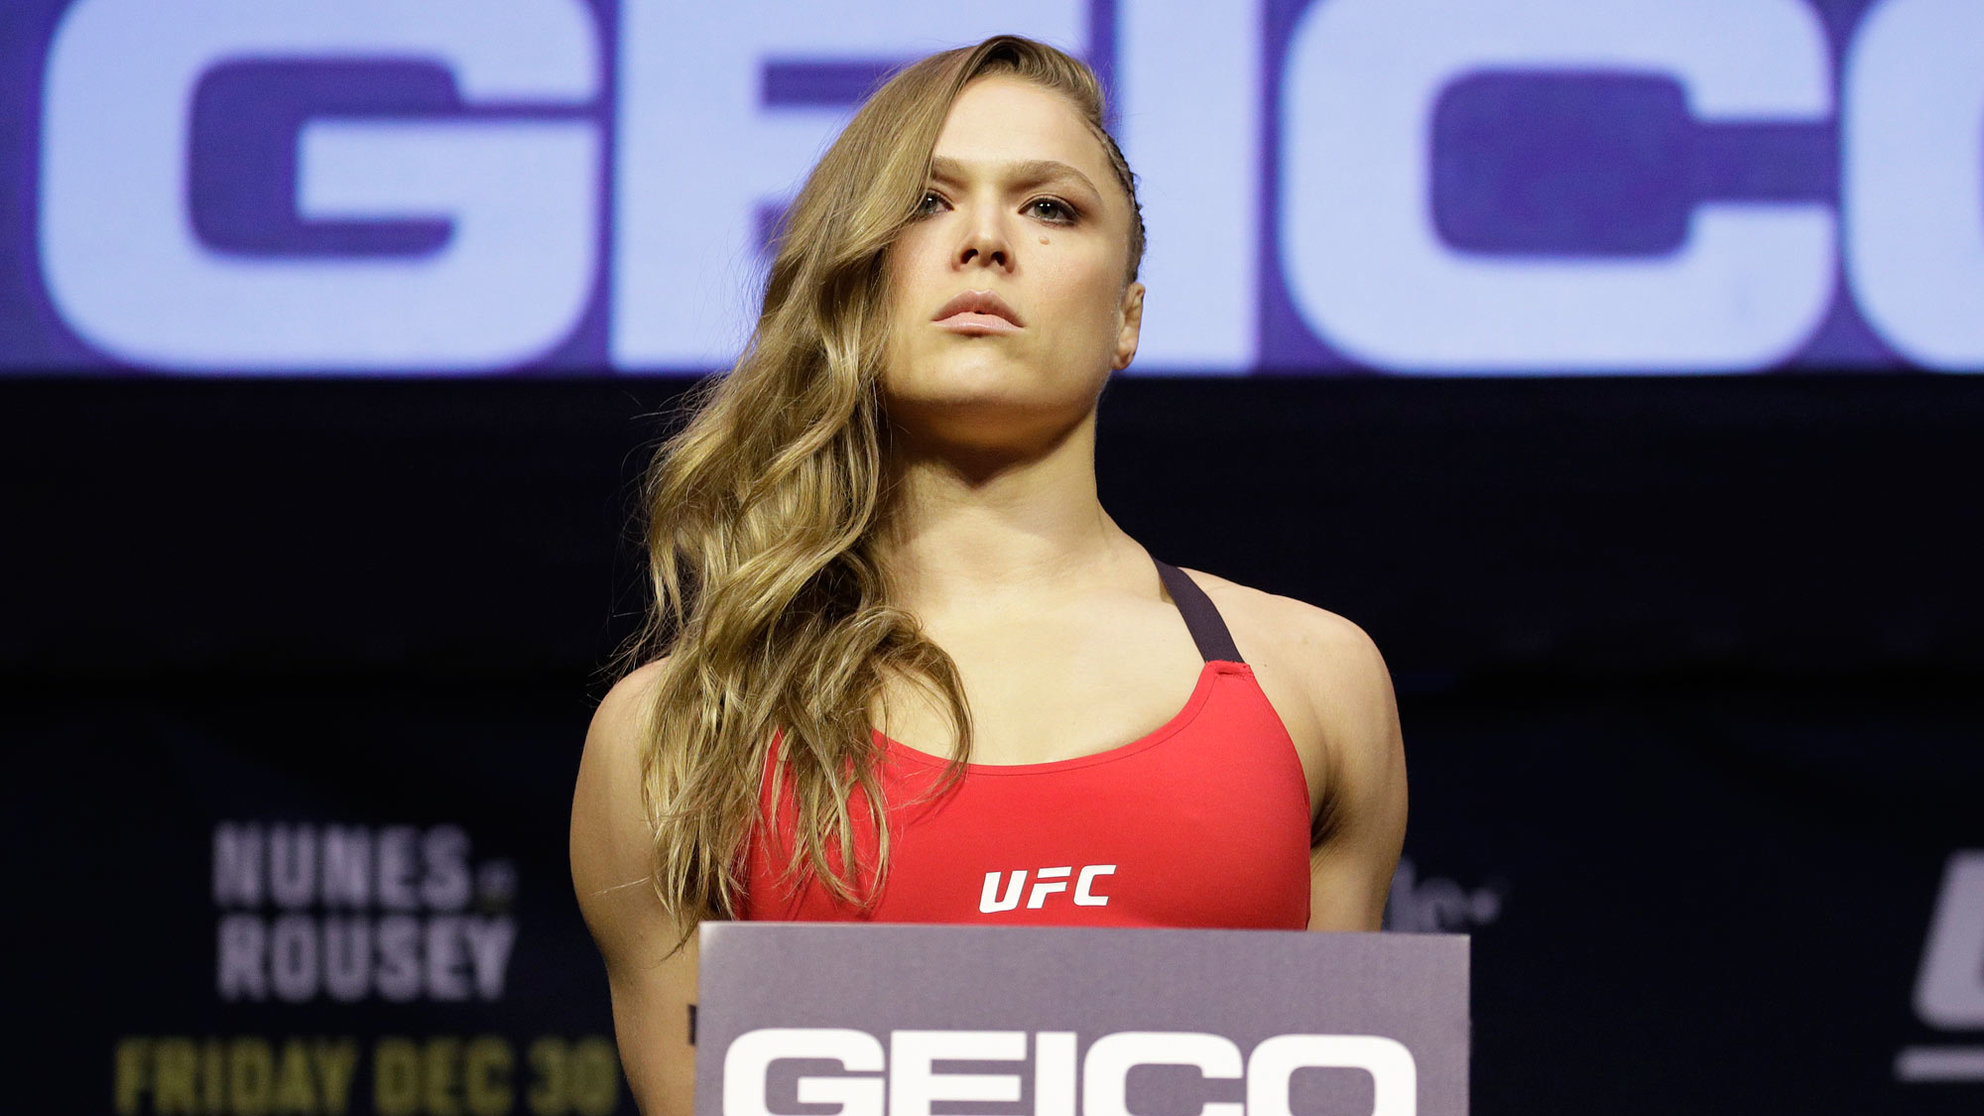 Ronda Rousey Breaks Social Media Silence Following UFC Loss to Share Inspirational J.K. Rowling Quote